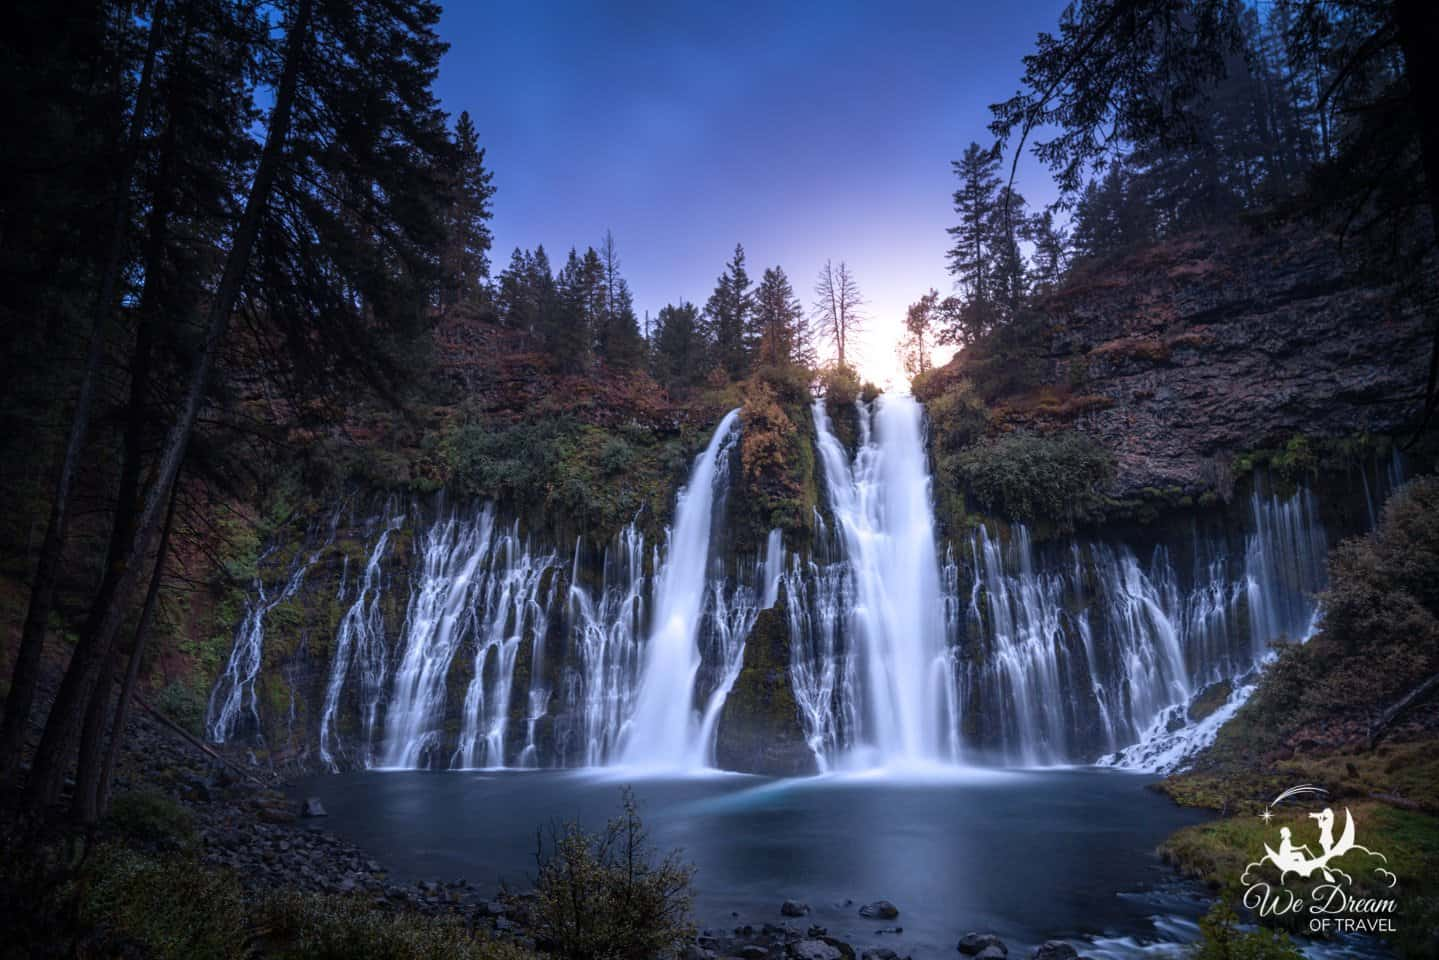 Wide angle photography while camping at Burney Falls